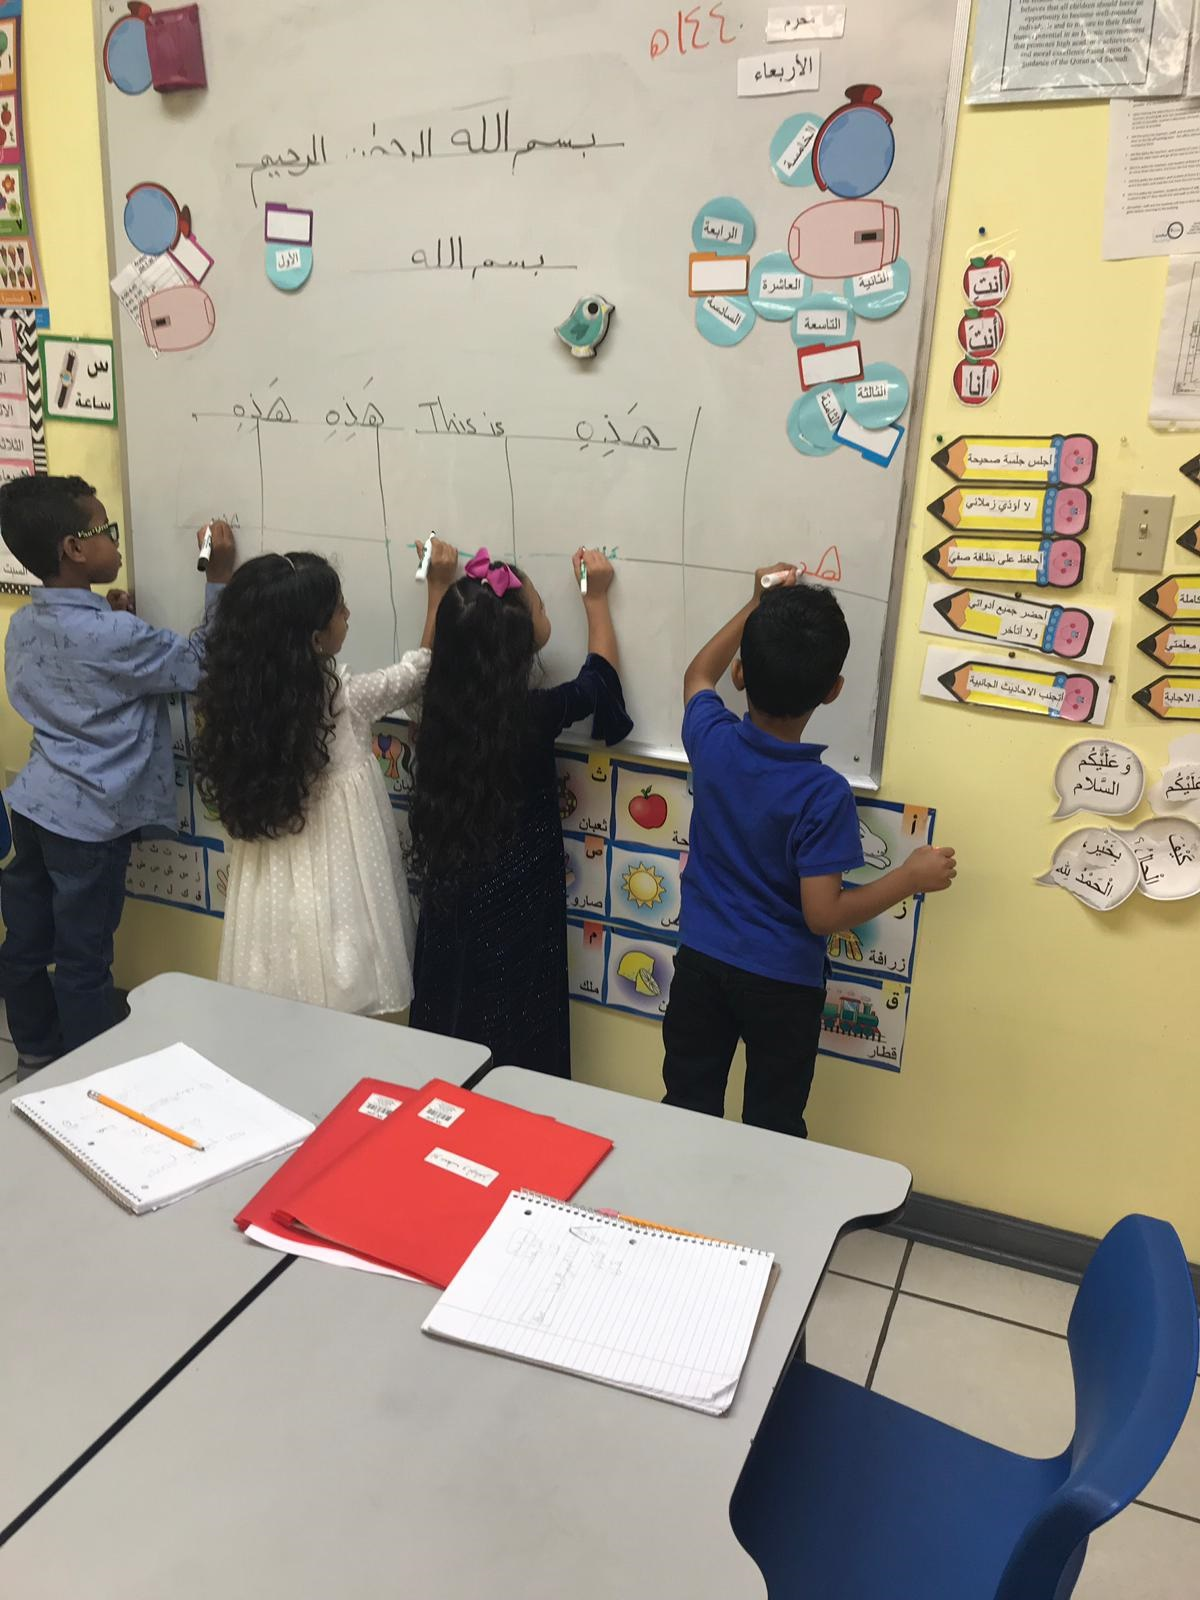 Arabic Board Work